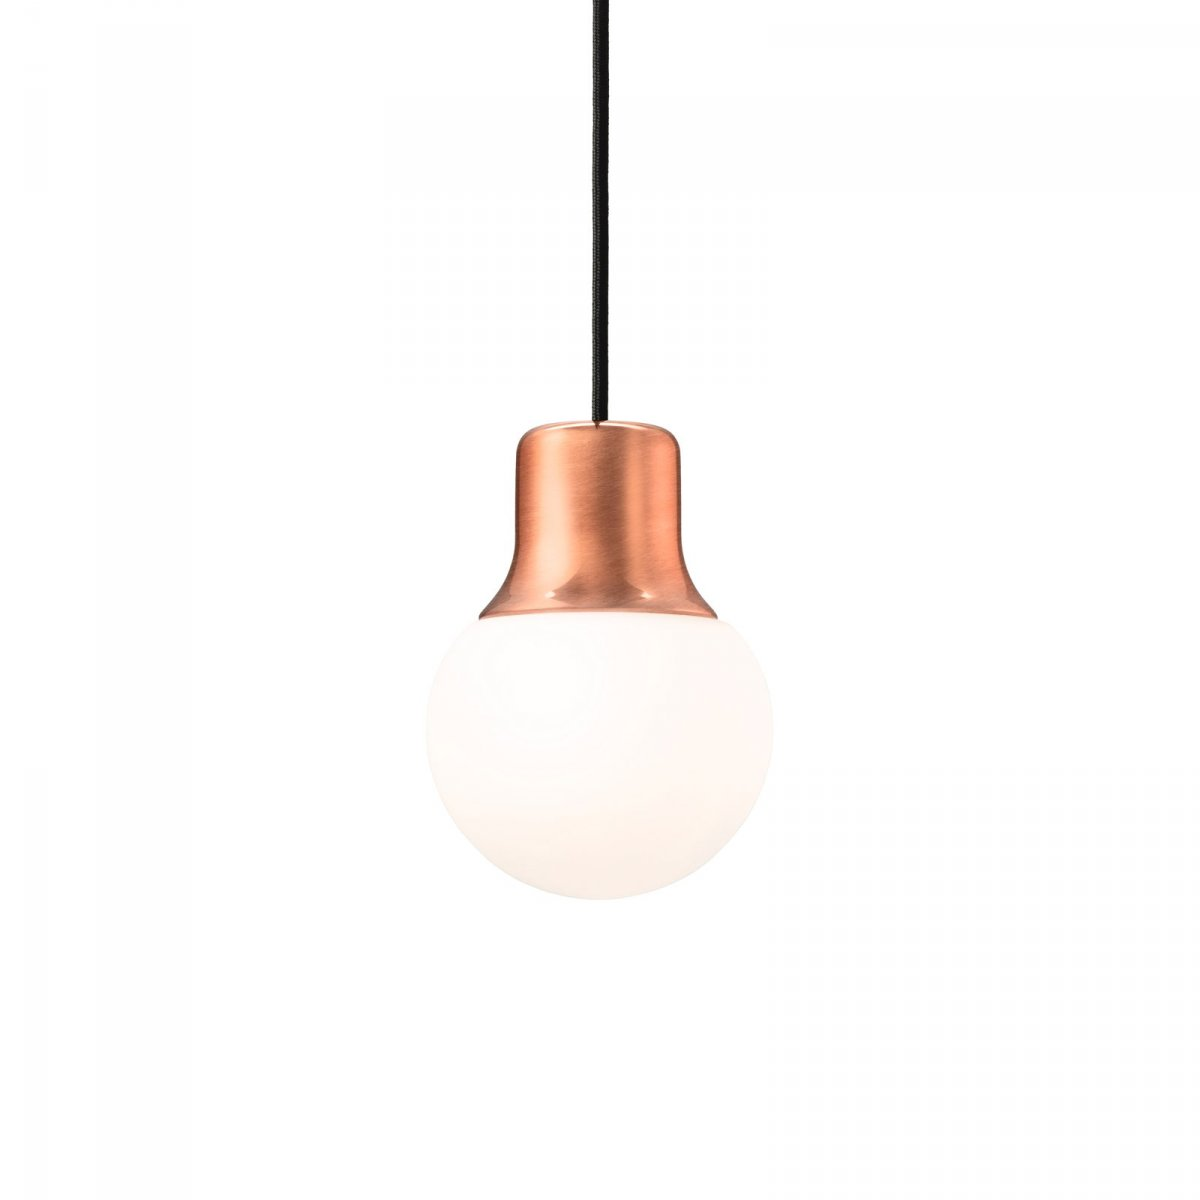 Mass Light Pendant NA5, copper.